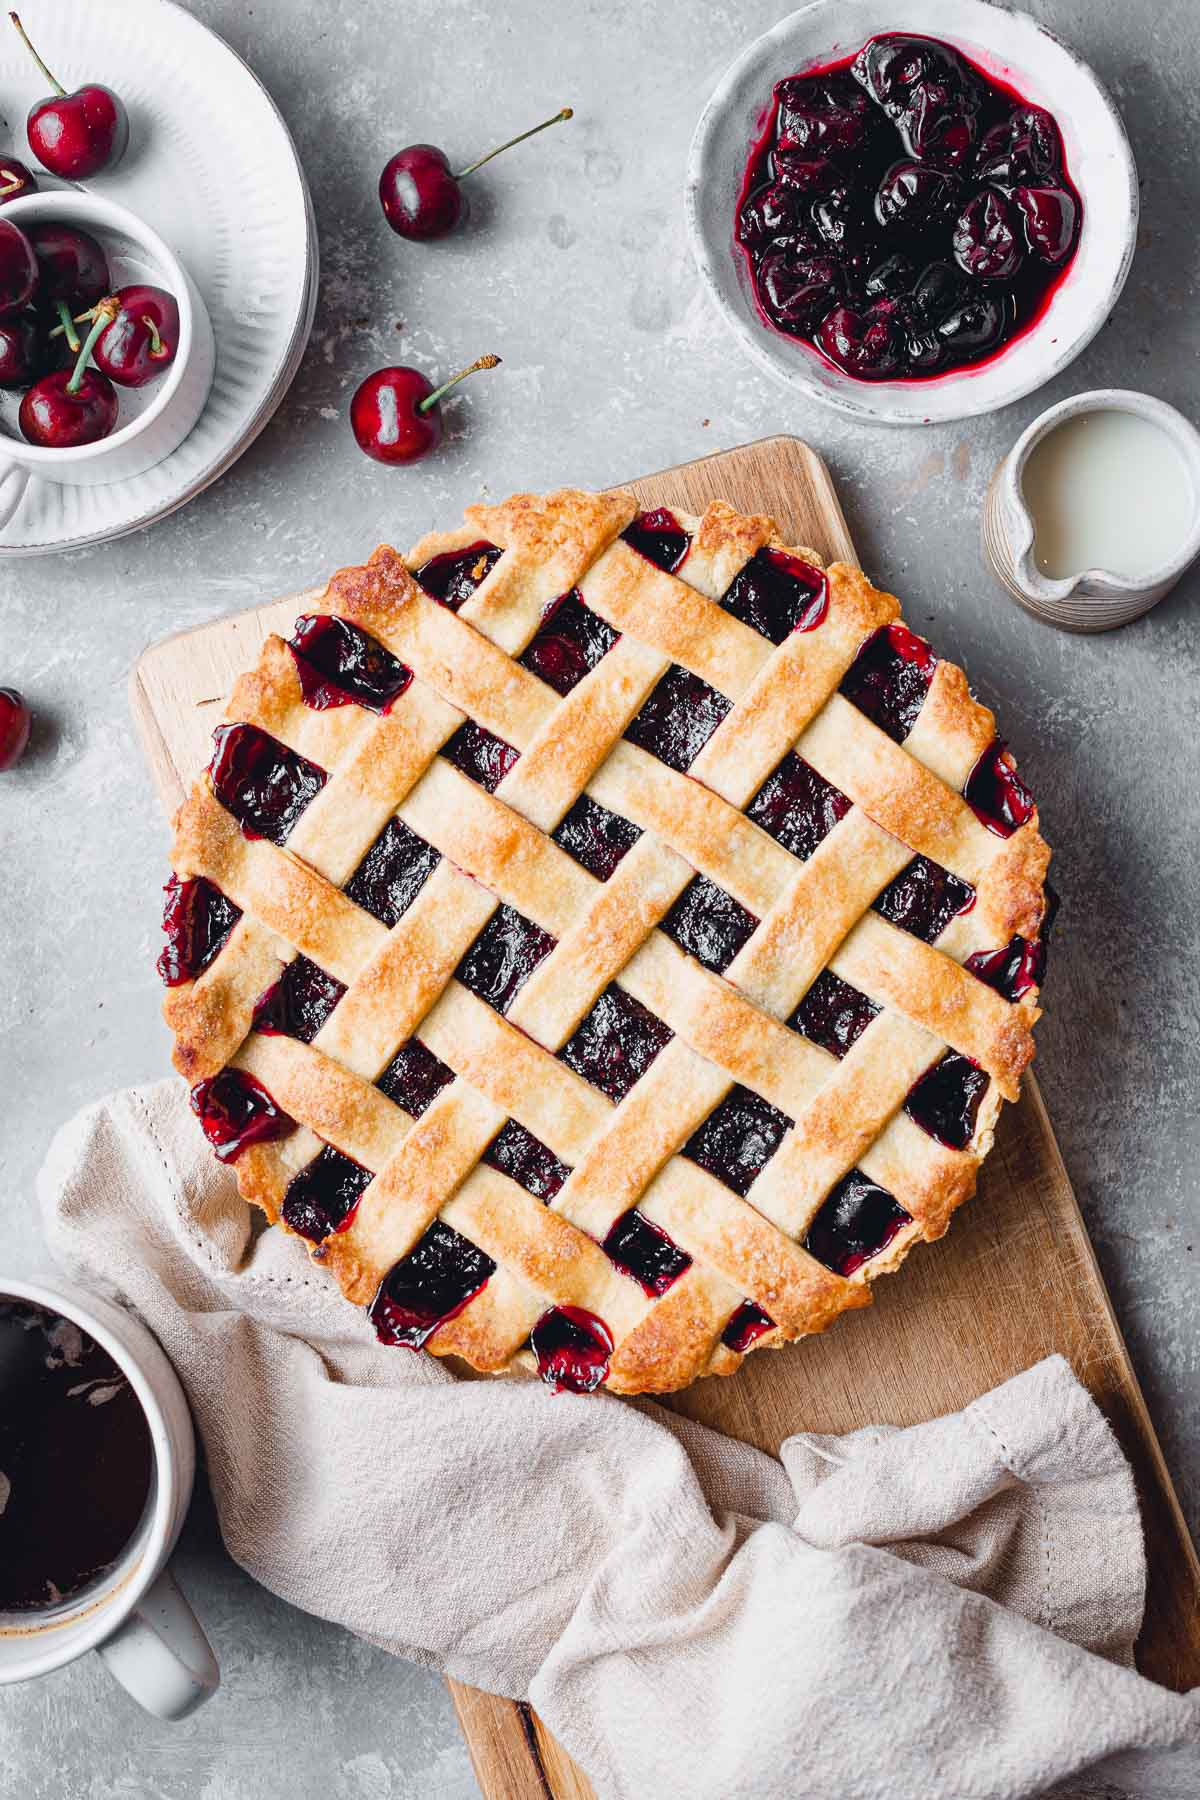 A baked vegan cherry pie placed on a wooden board surrounded by cherries and coffee.